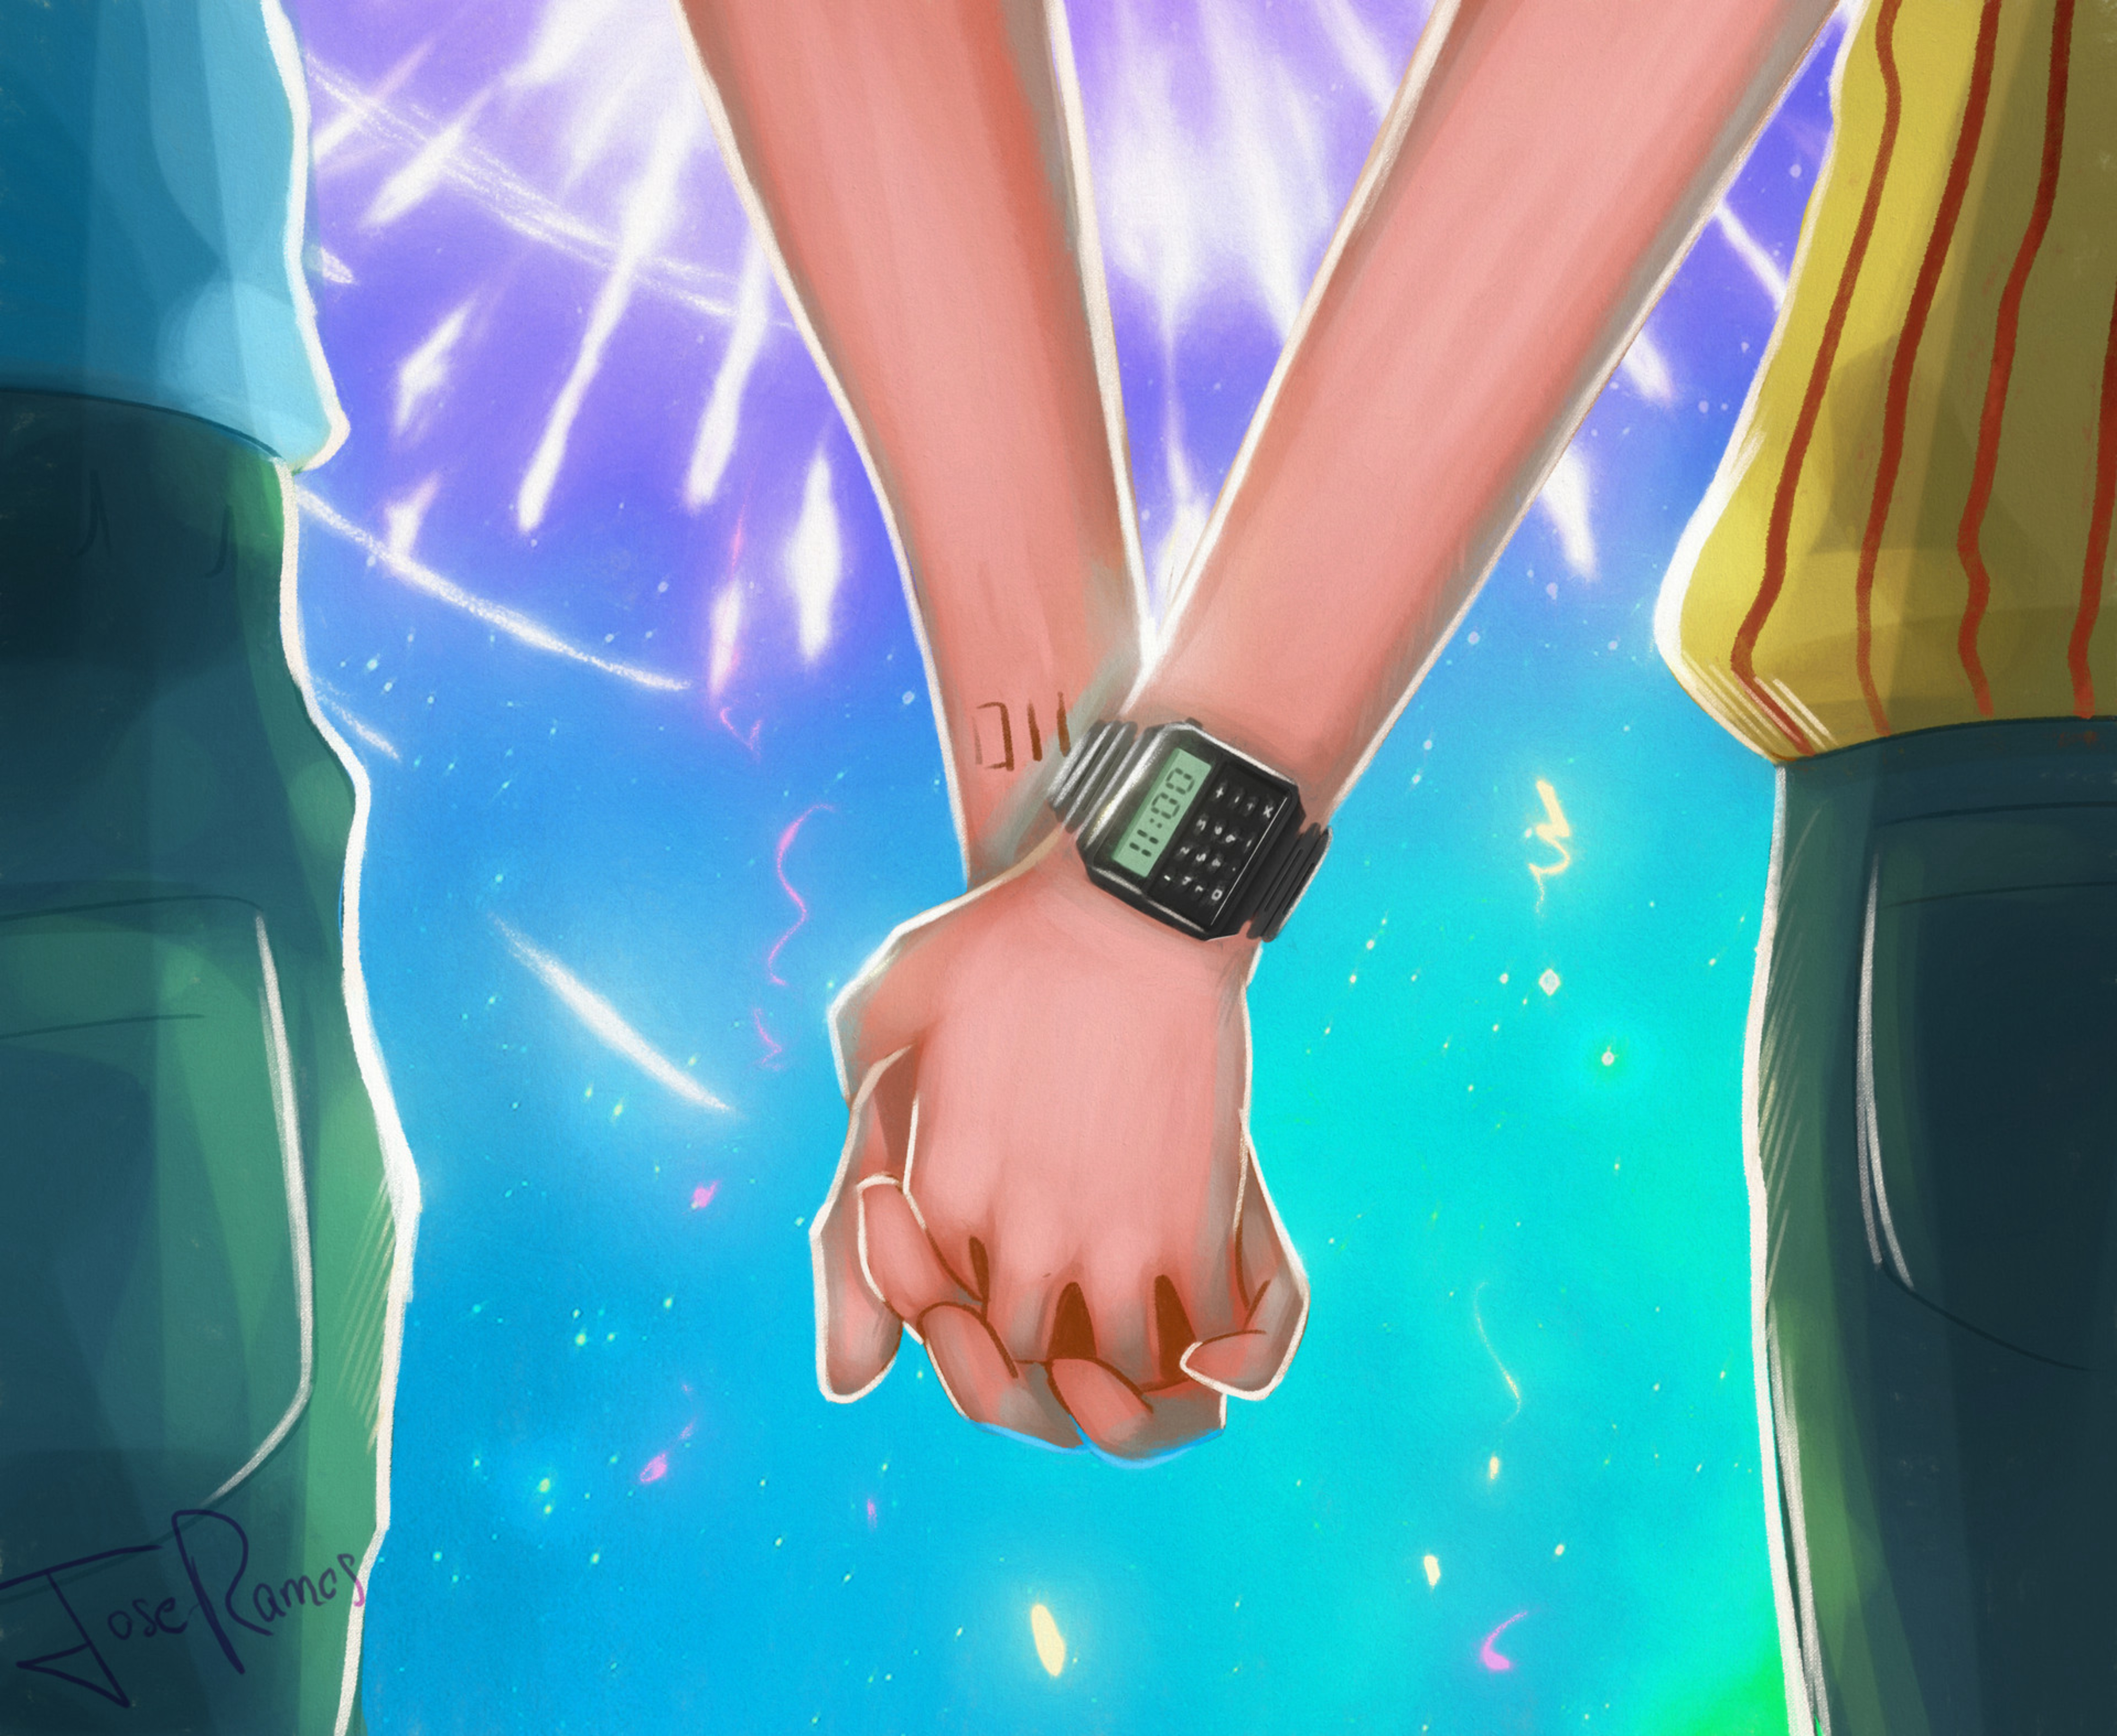 56647 download wallpaper Hands, Couple, Pair, Love, Romance, Art screensavers and pictures for free